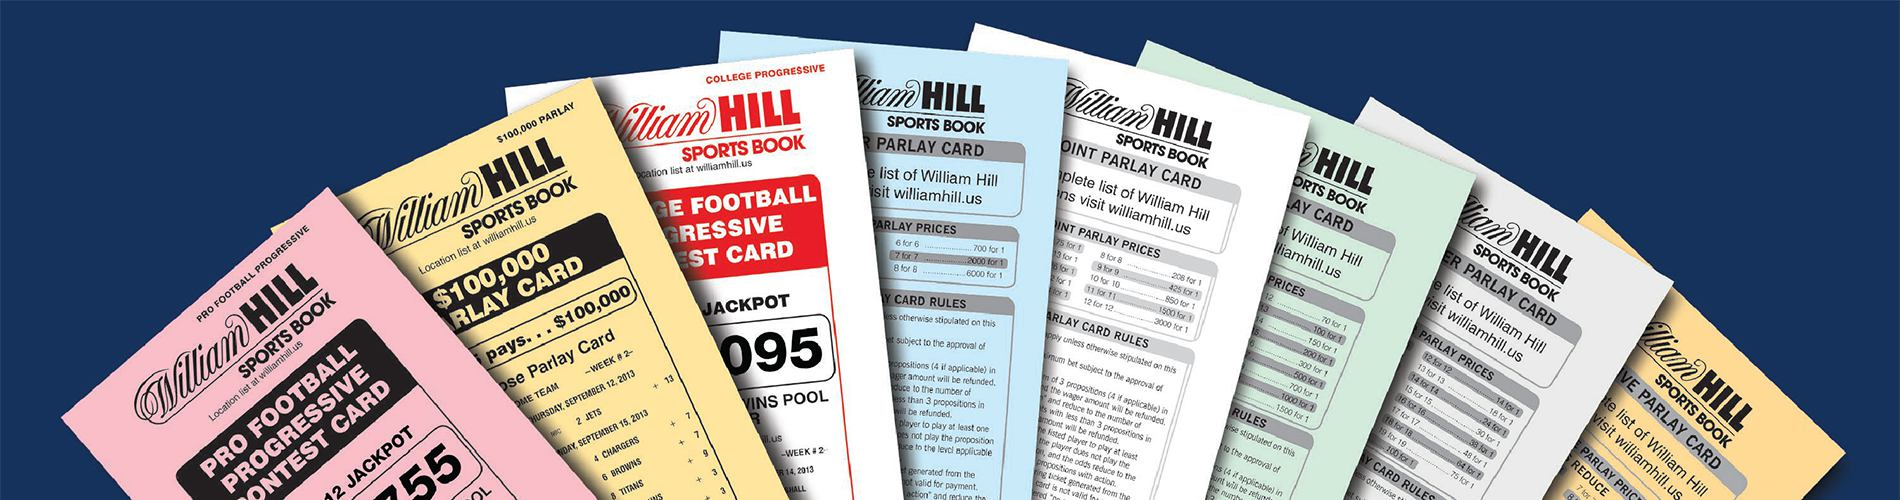 William Hill parlay cards